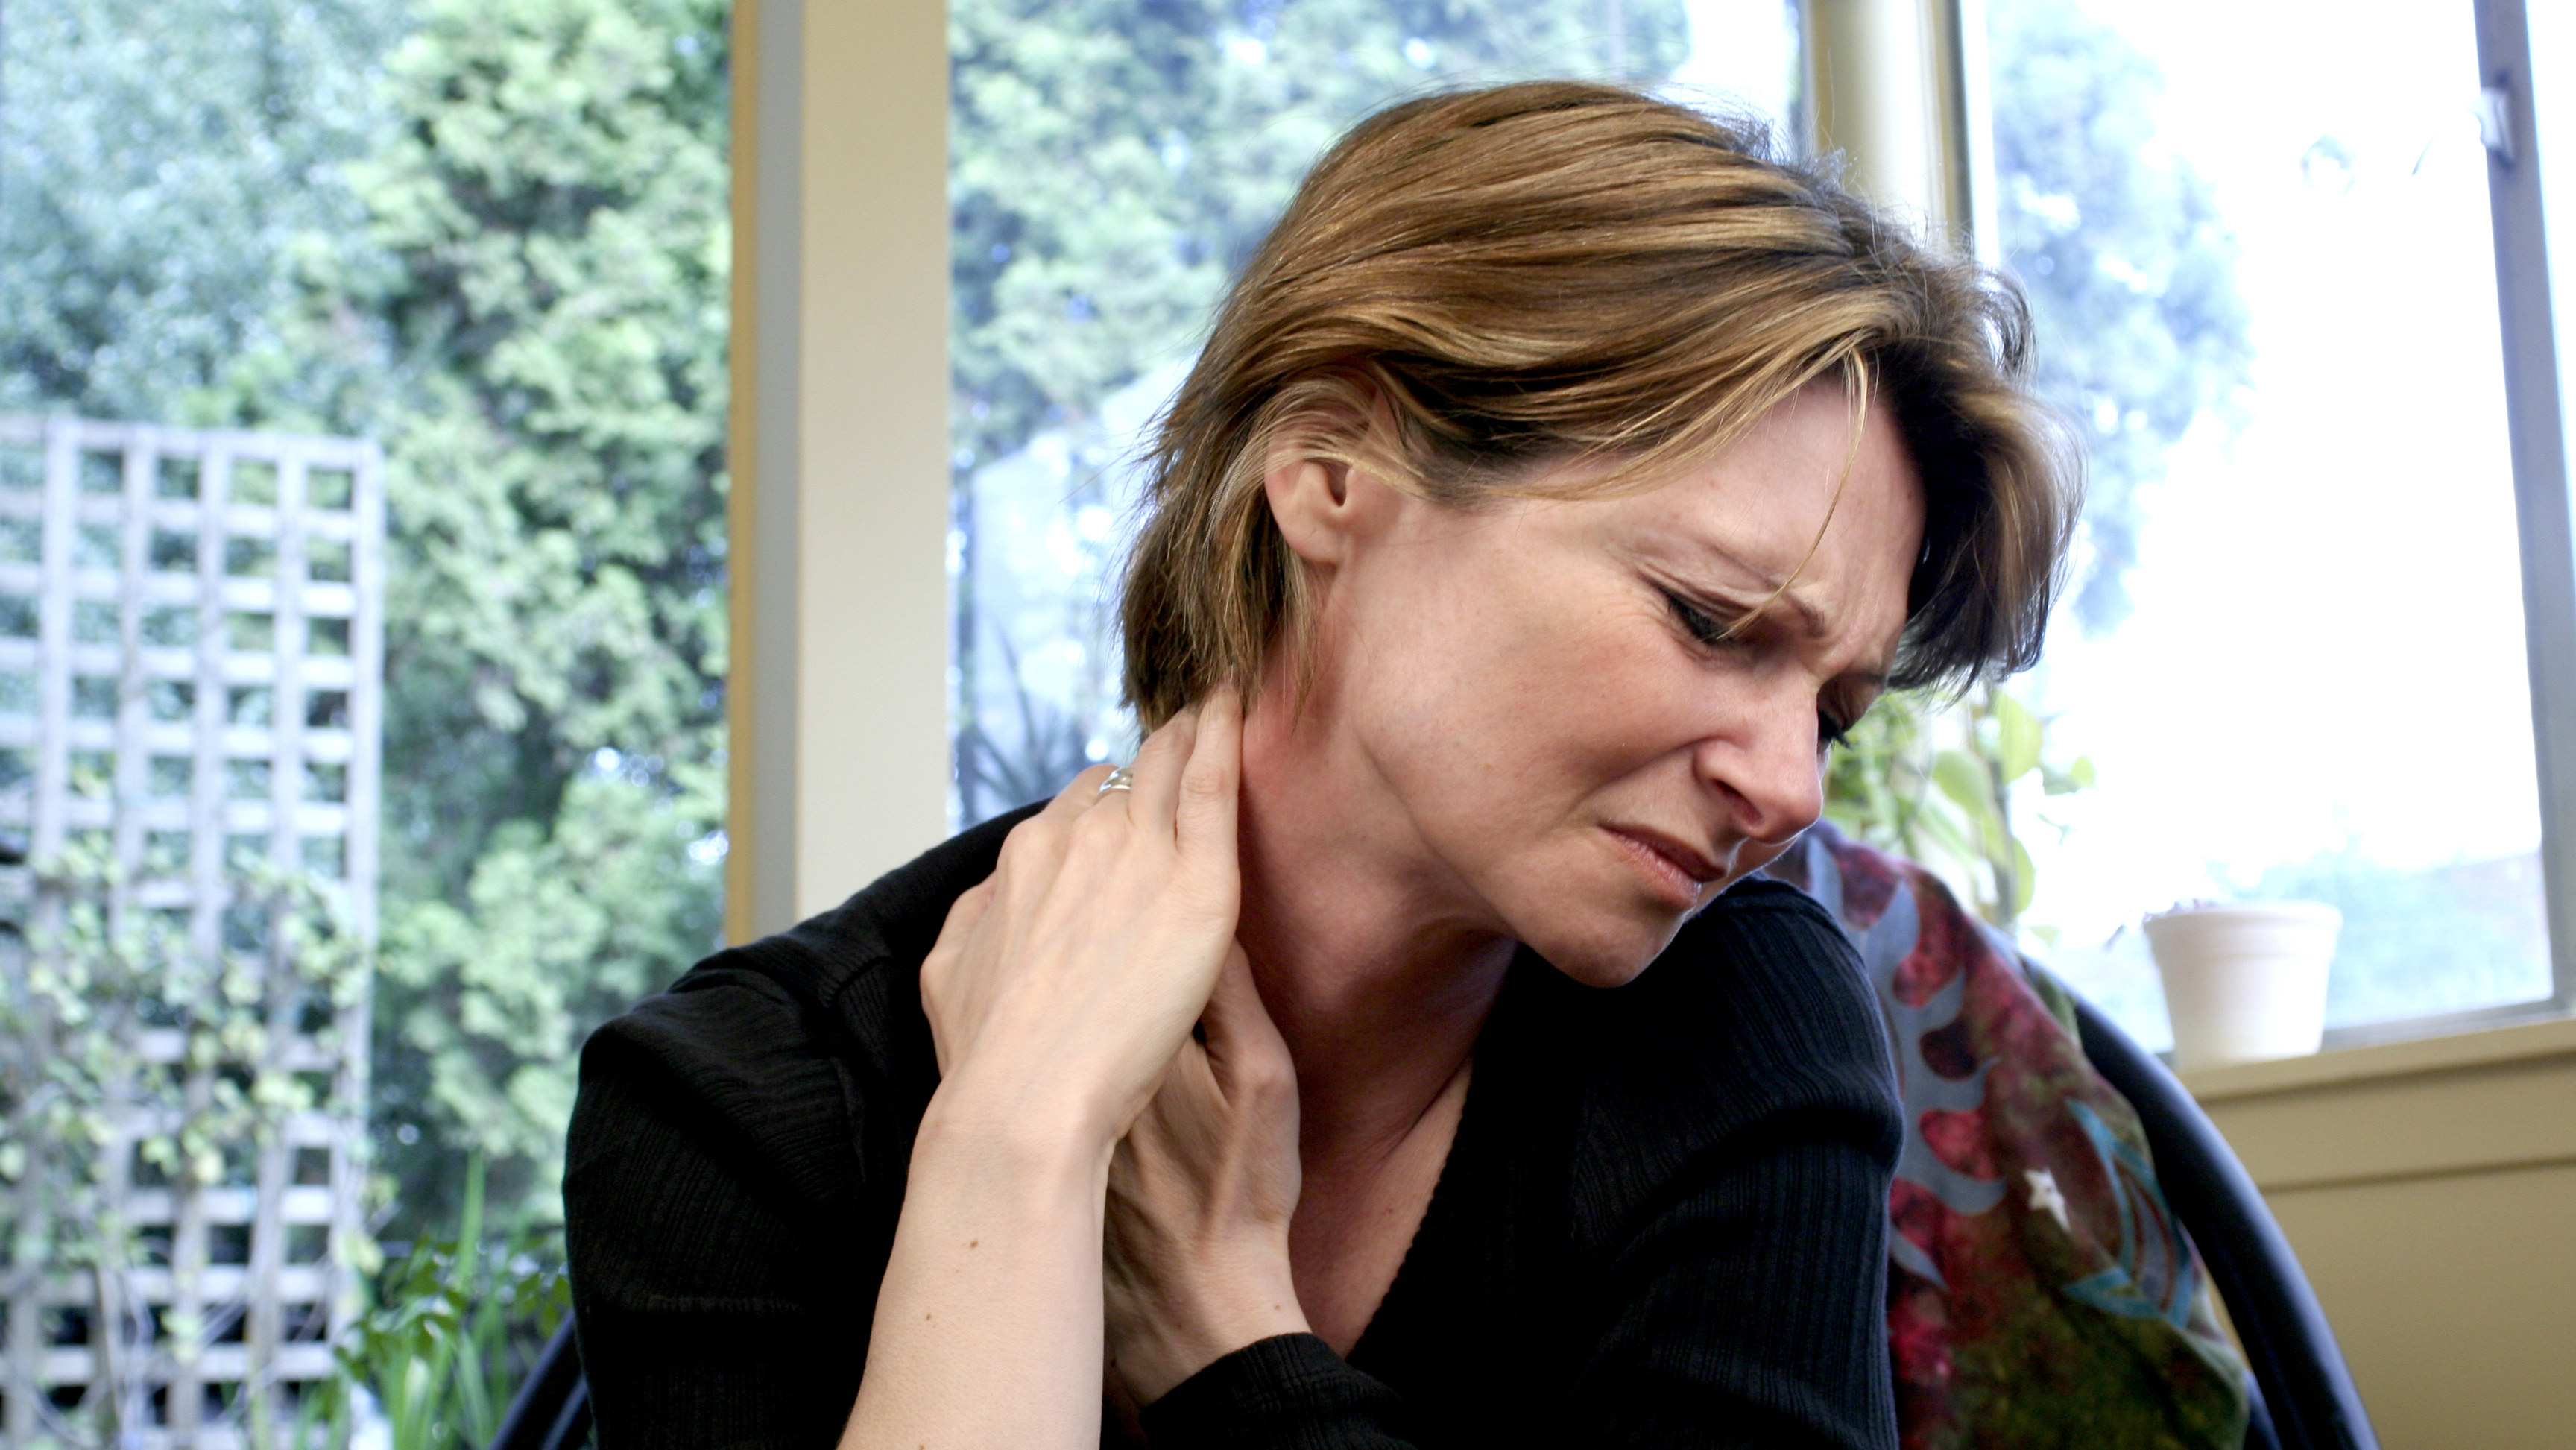 neck pain, stress, factors for aging, the role of stress in aging, finding balance for longevity